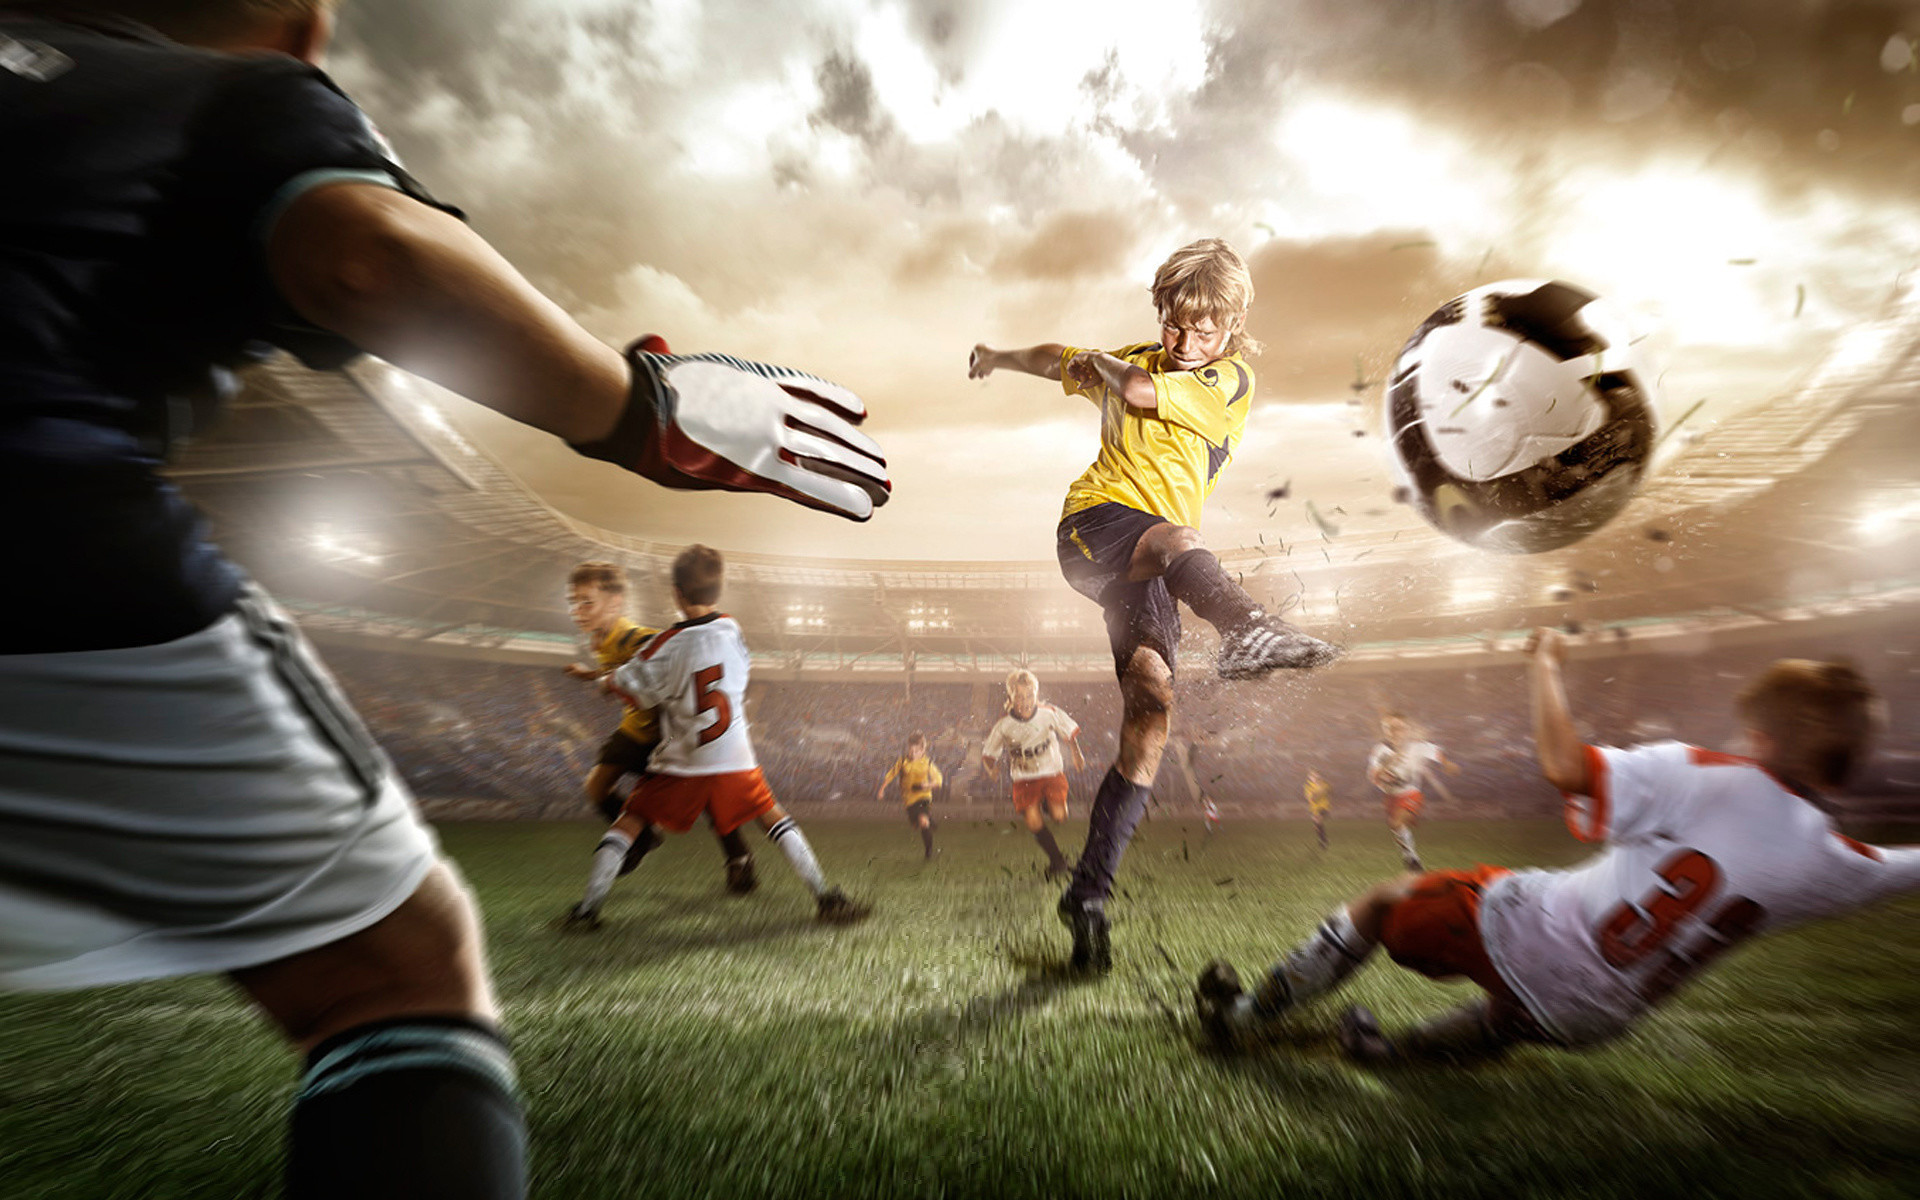 1920x1200 Cool Soccer Backgrounds Wallpaper 1920×1200